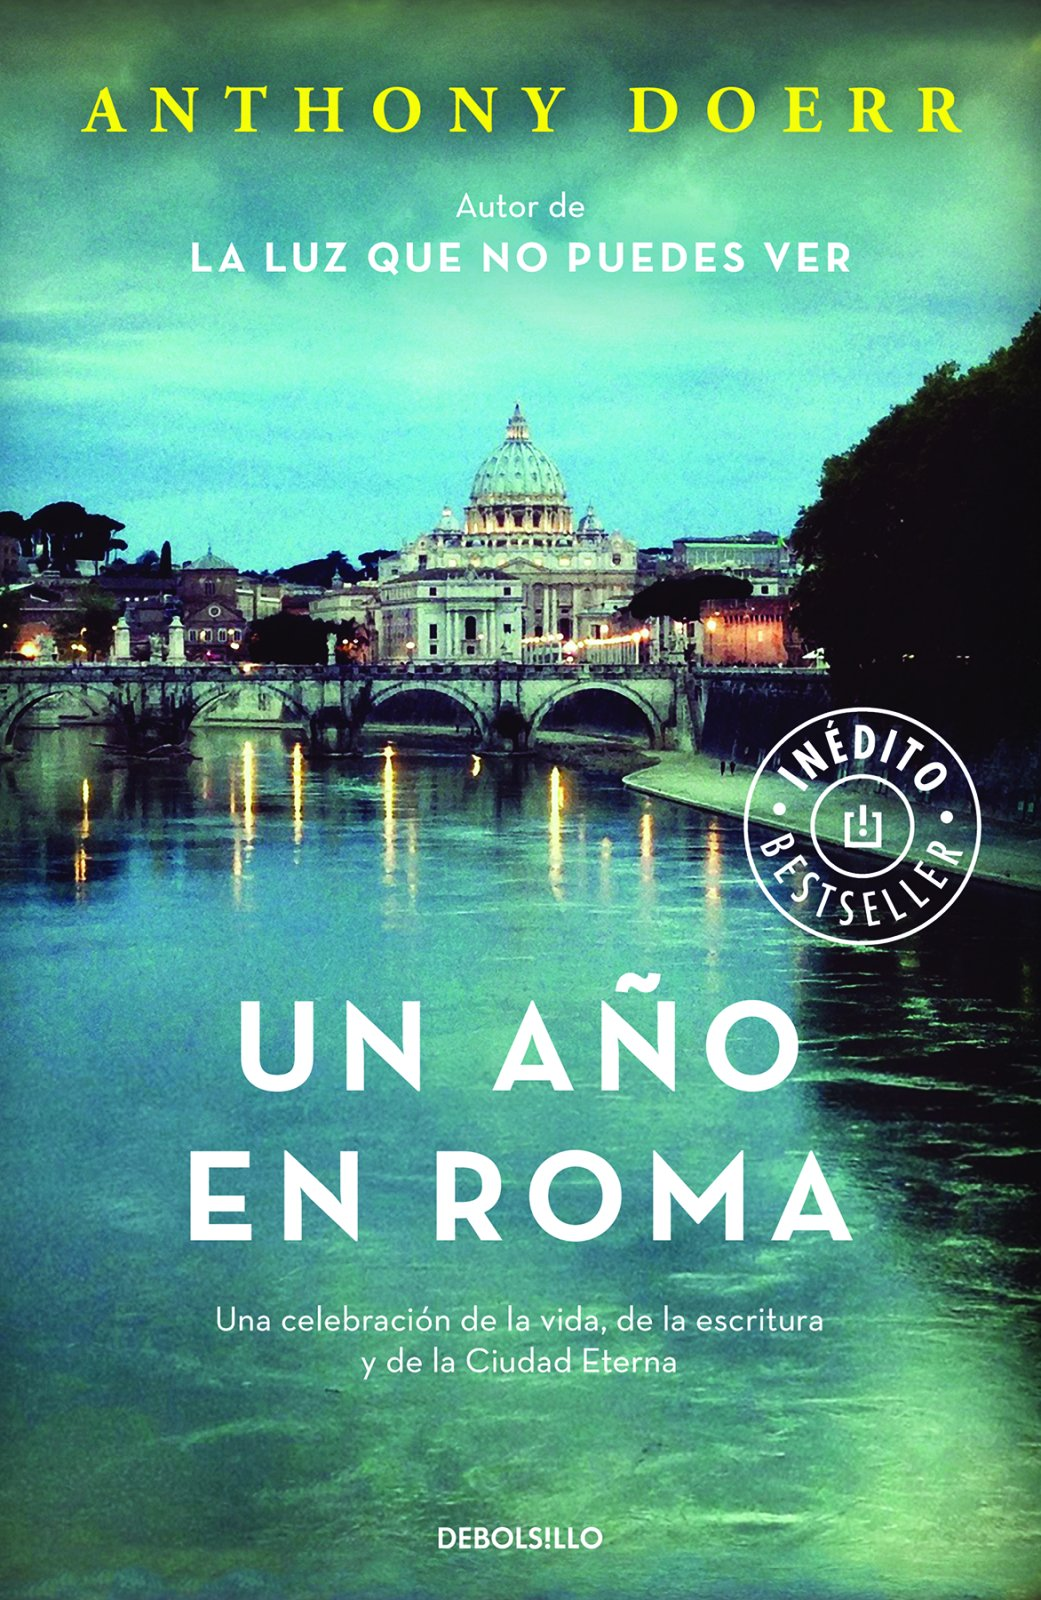 Un año en Roma / Four Seasons in Rome: On Twins, Insomnia, and the Biggest Funer al in the History of the World (Spanish Edition): Anthony Doerr: ...